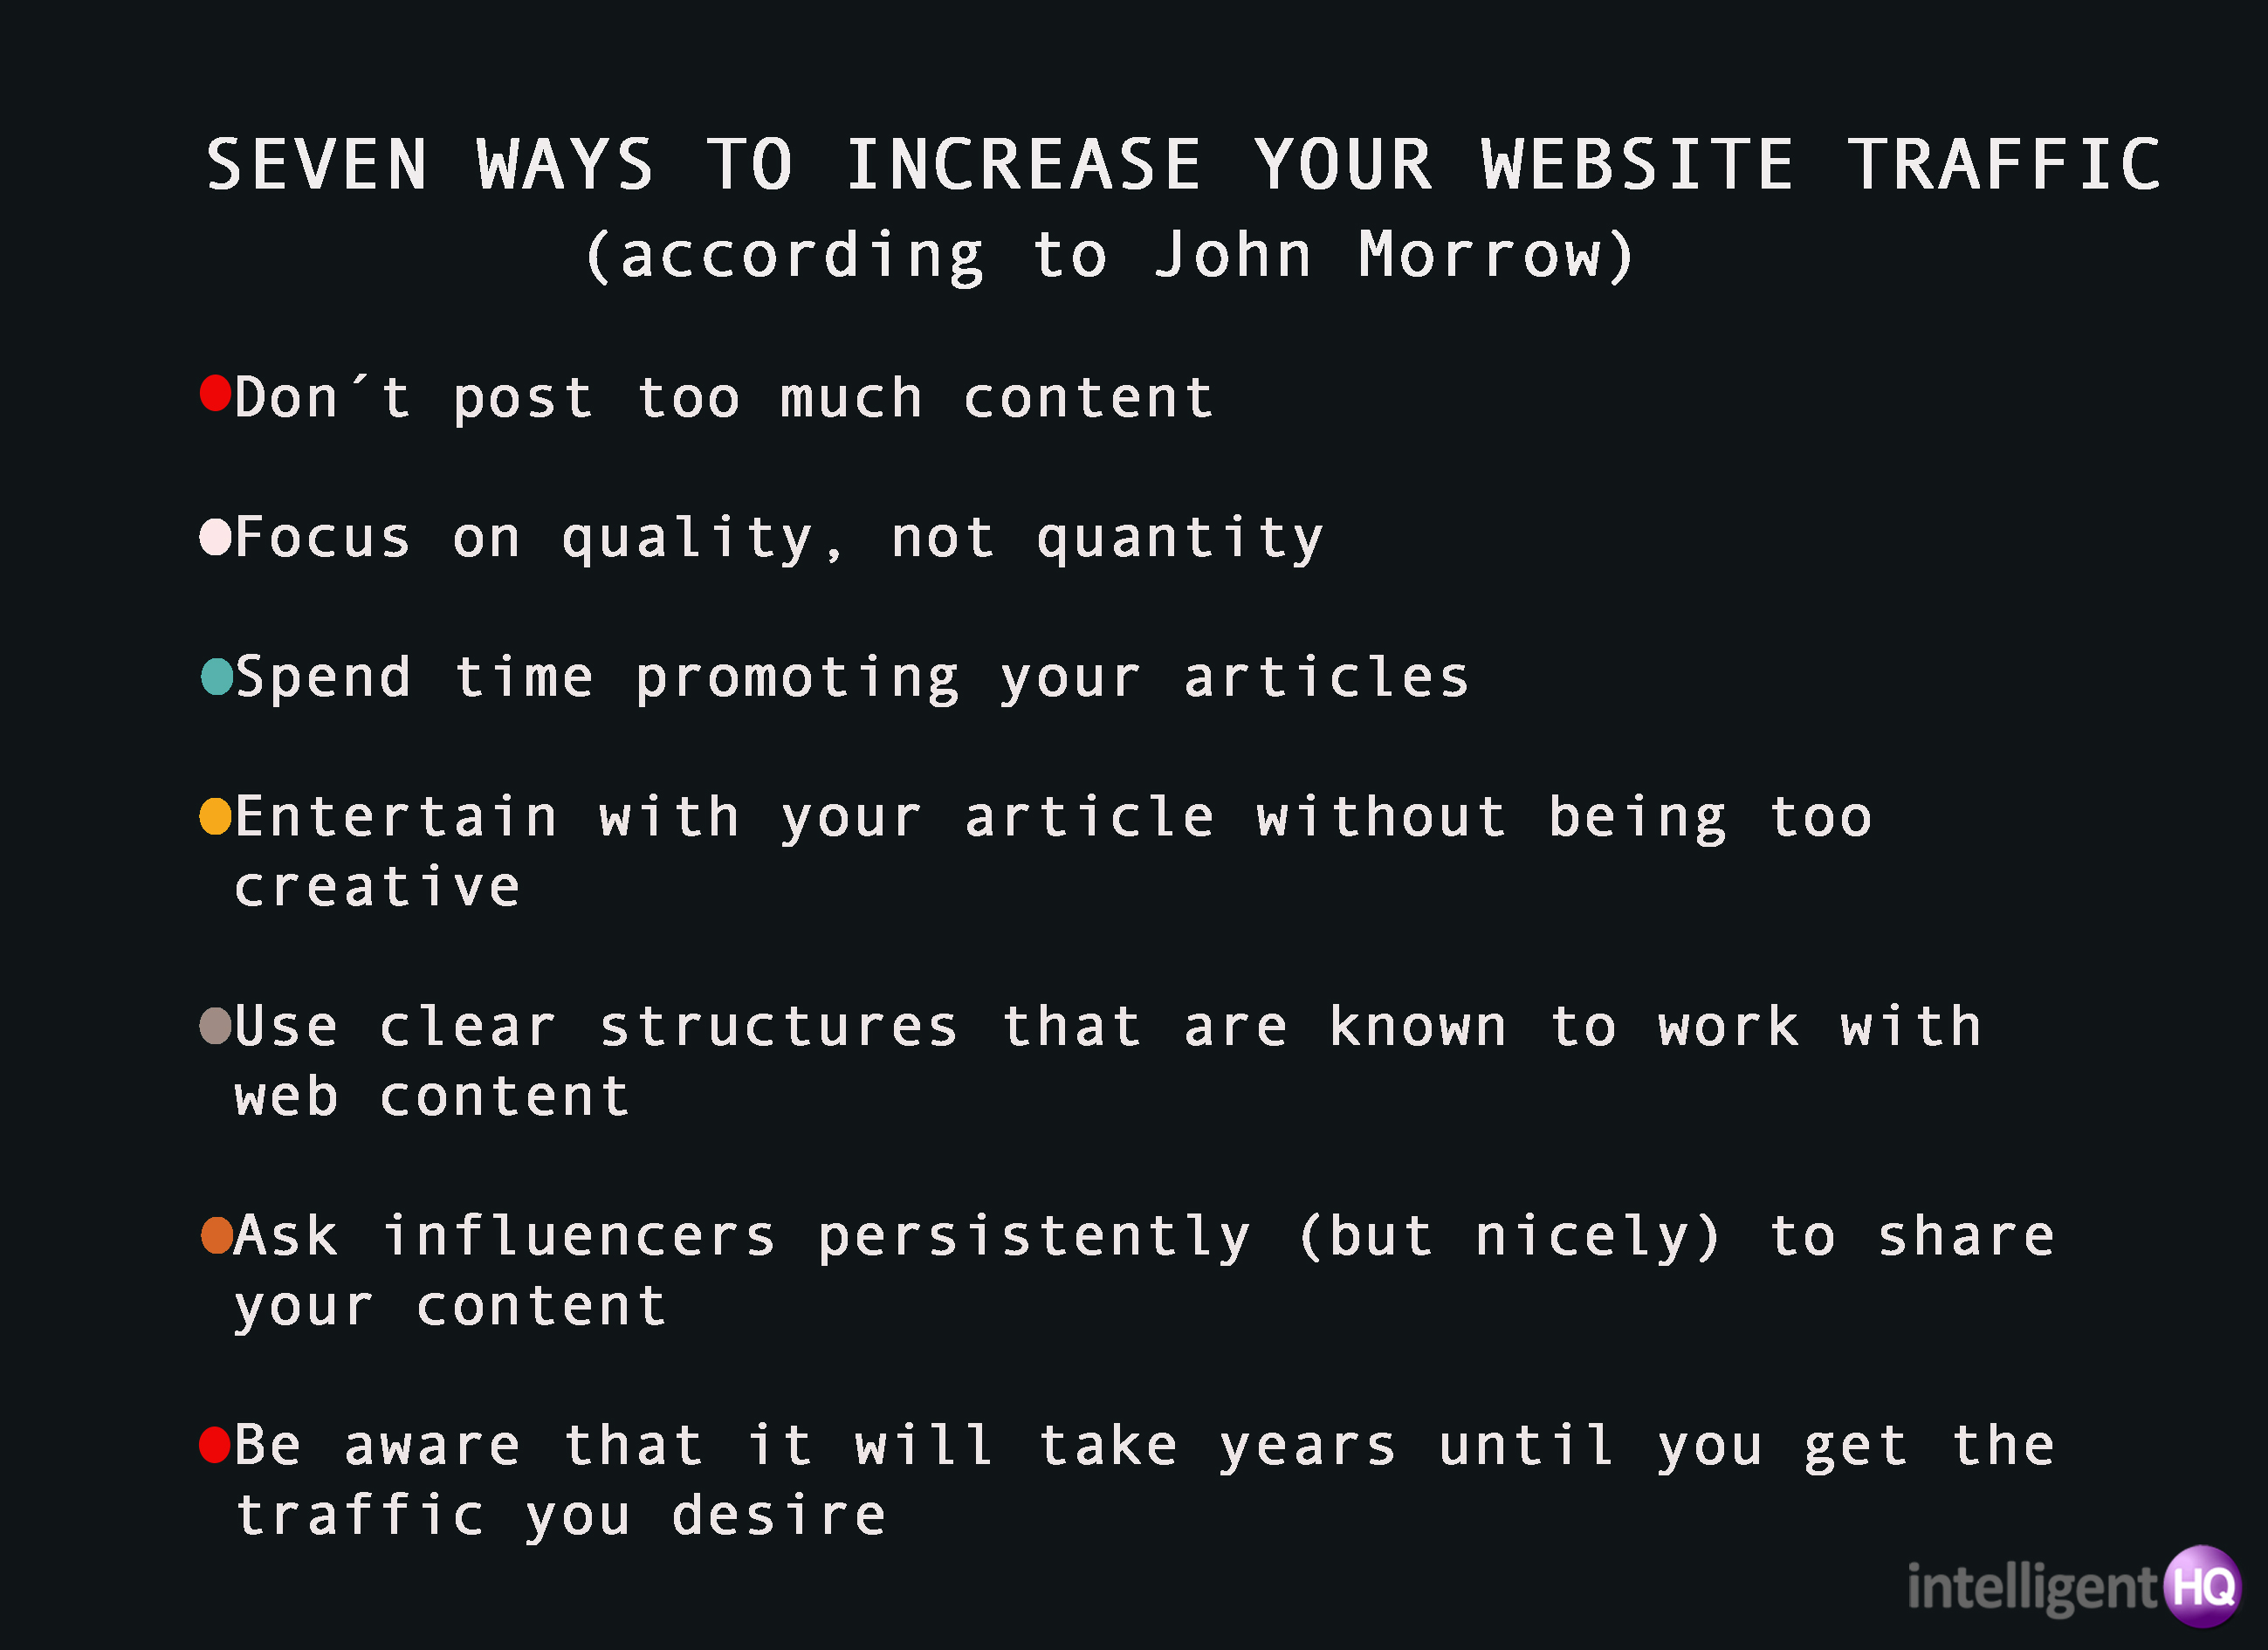 7 ways to increase your website traffic Intelligenthq